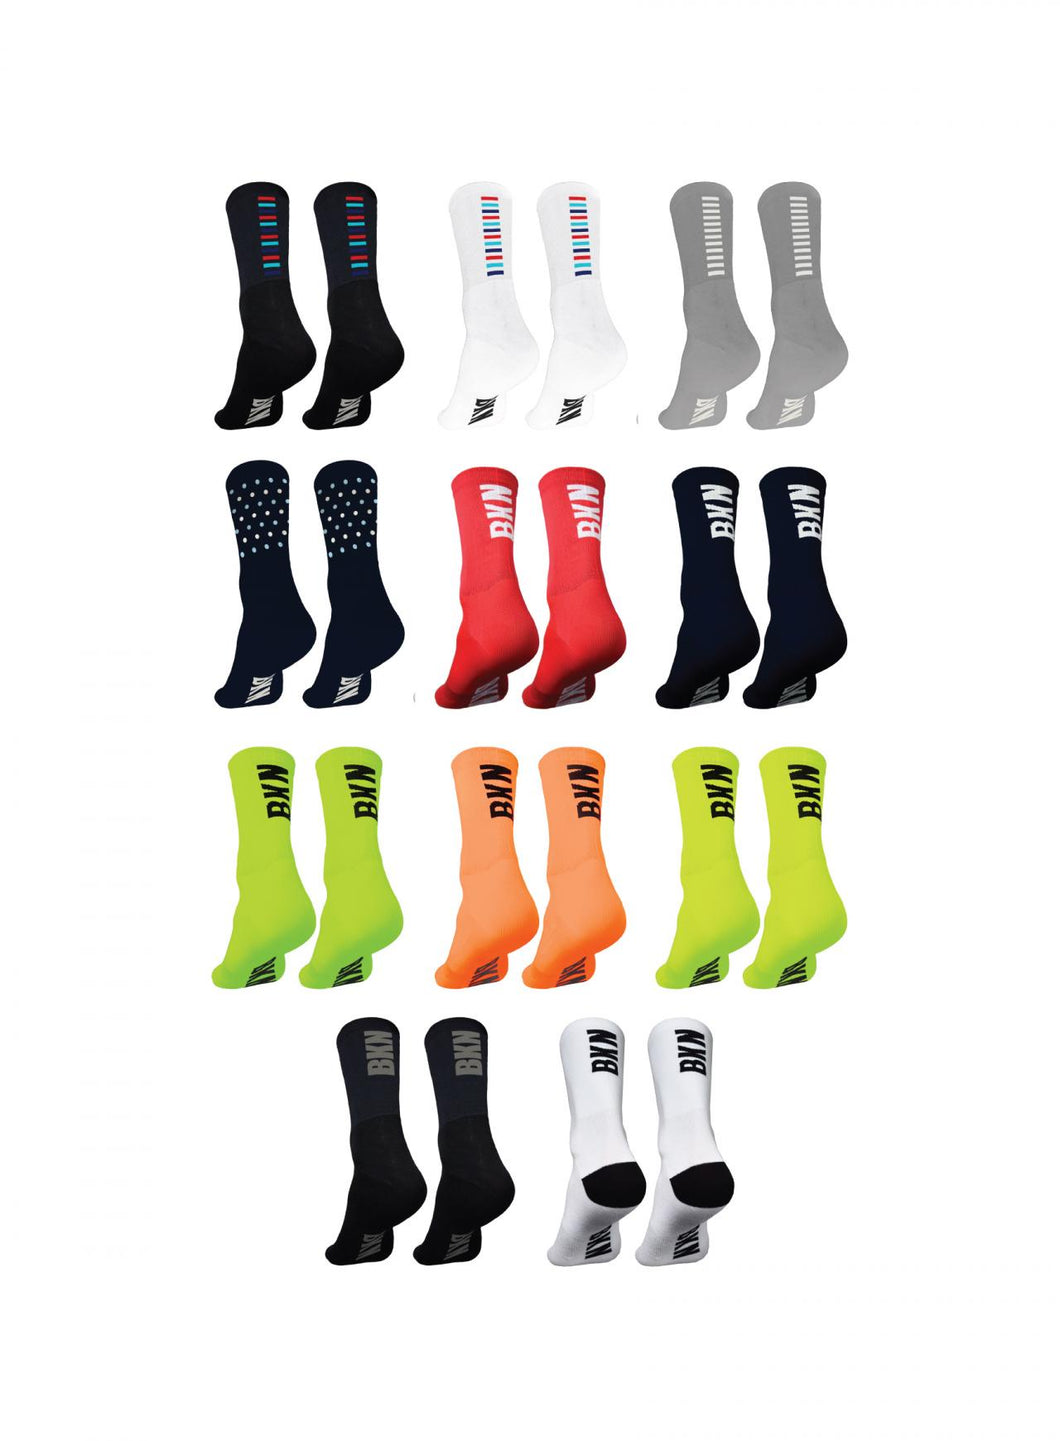 Brooklyn Project Pro Cycling Woven Socks, 2021 - Cycle Closet